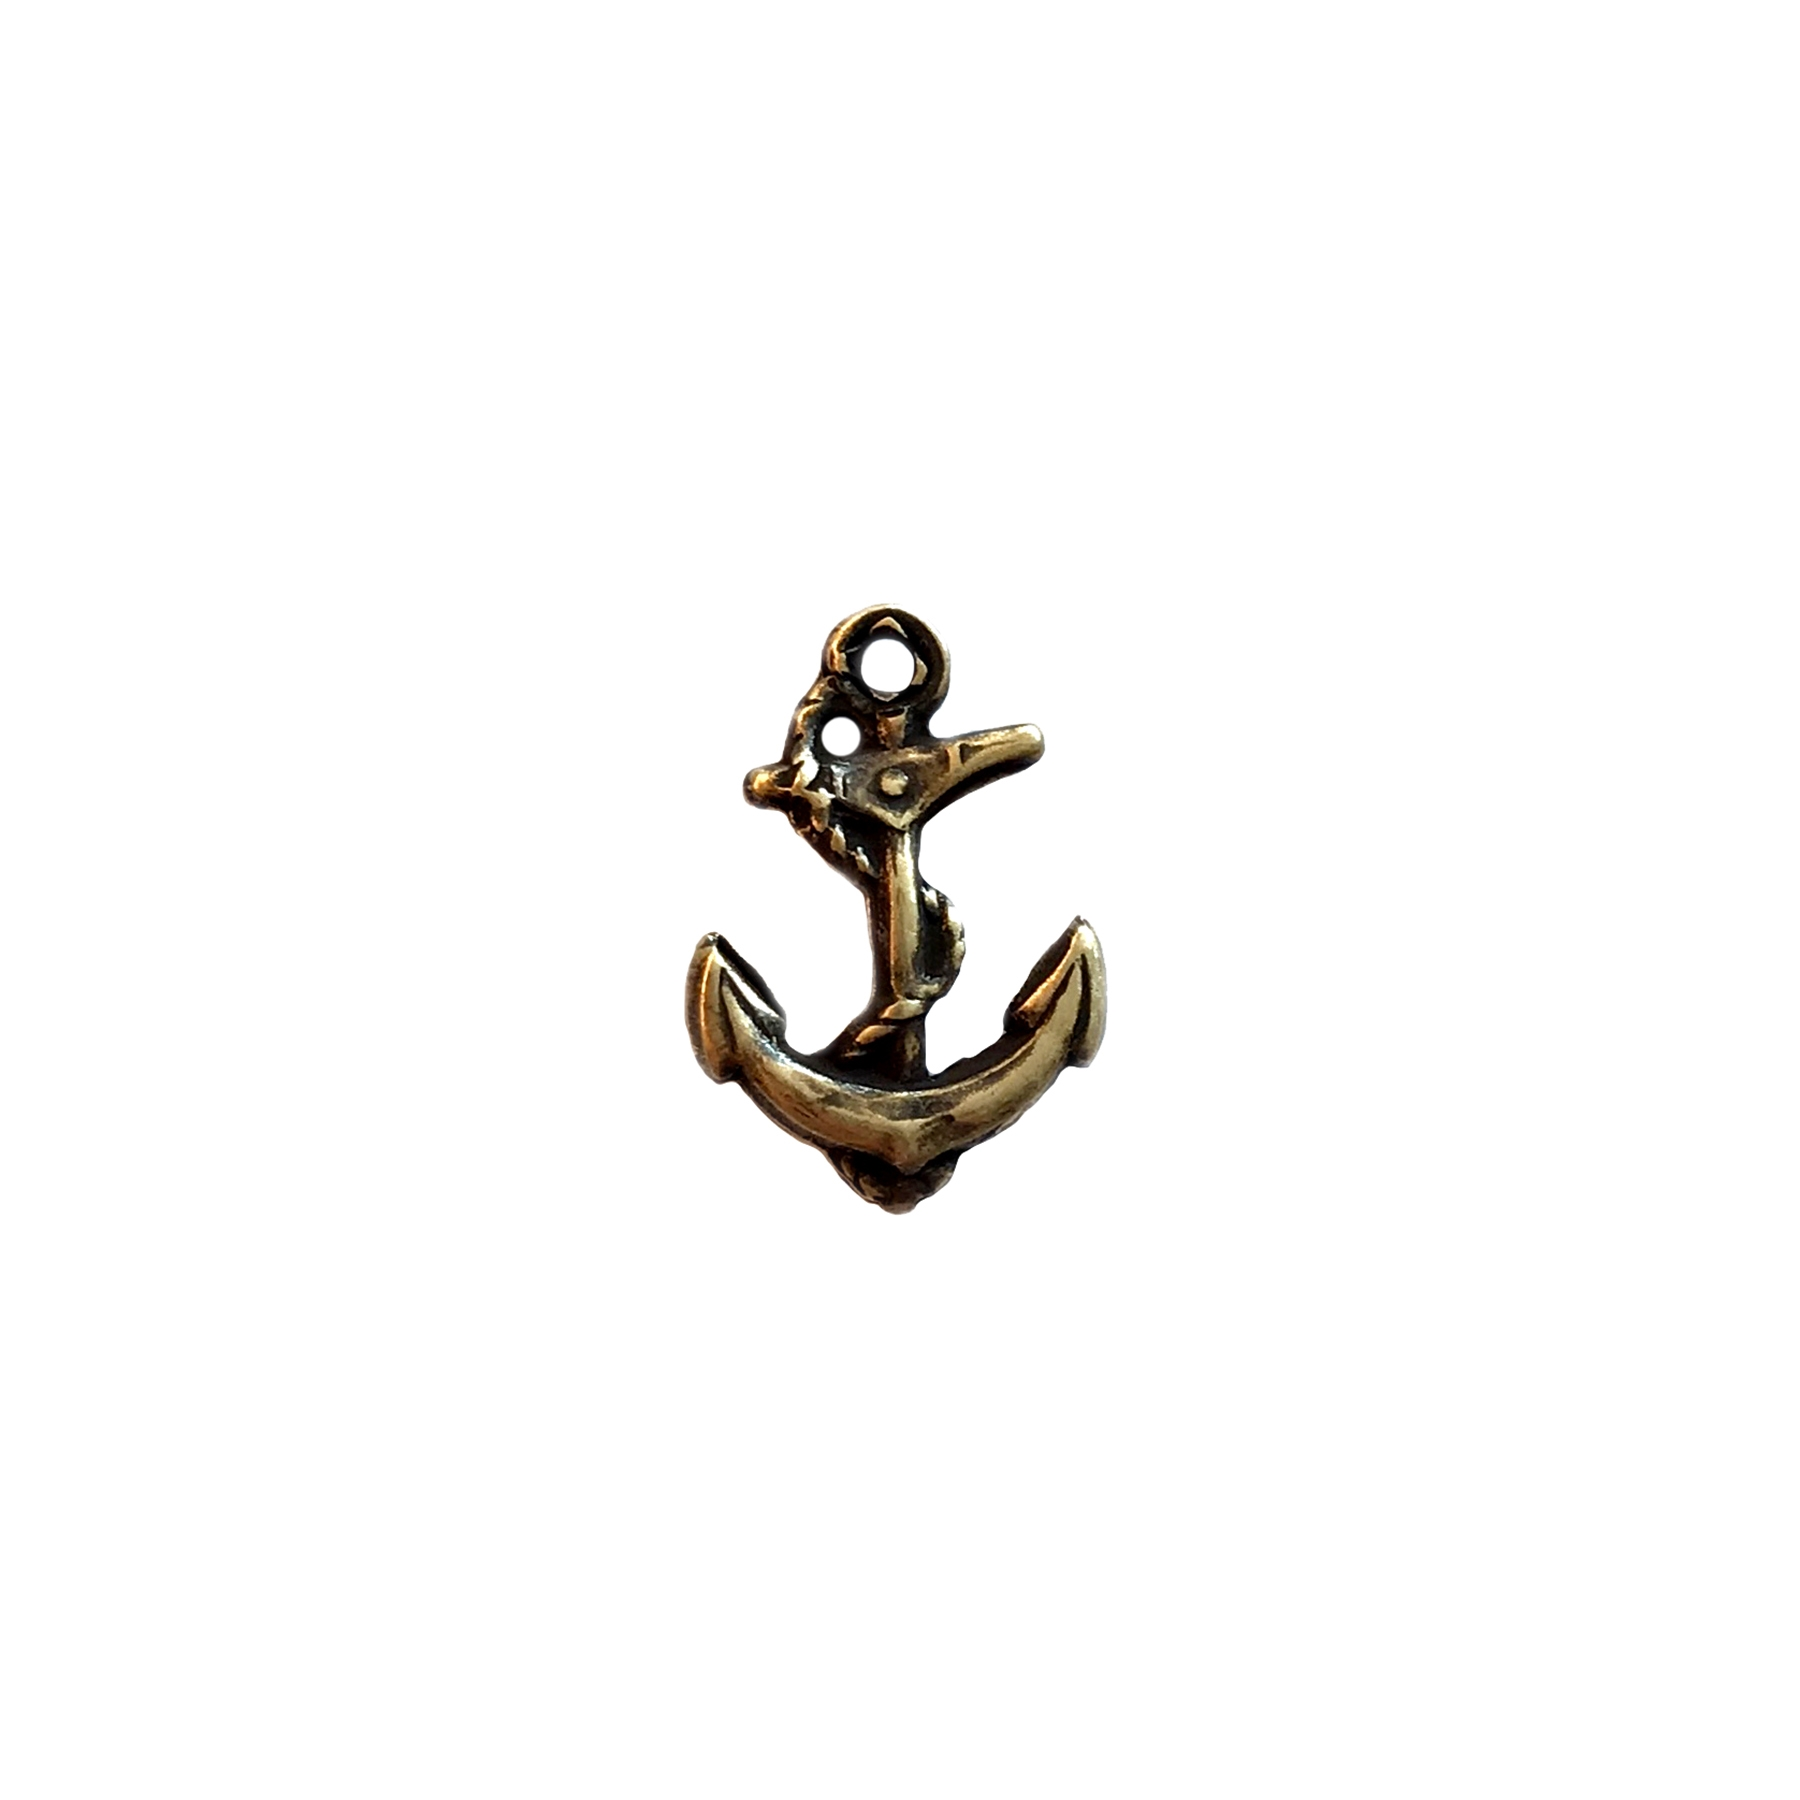 brass anchor, anchor charm, antique brass, brass ox, 15x10mm, vintage jewelry supplies, ocean jewelry, sea jewelry, brass, anchor, beach jewelry, jewelry findings, jewelry making, vintage supplies, jewelry supplies, charms, B'sue Boutiques, 04480